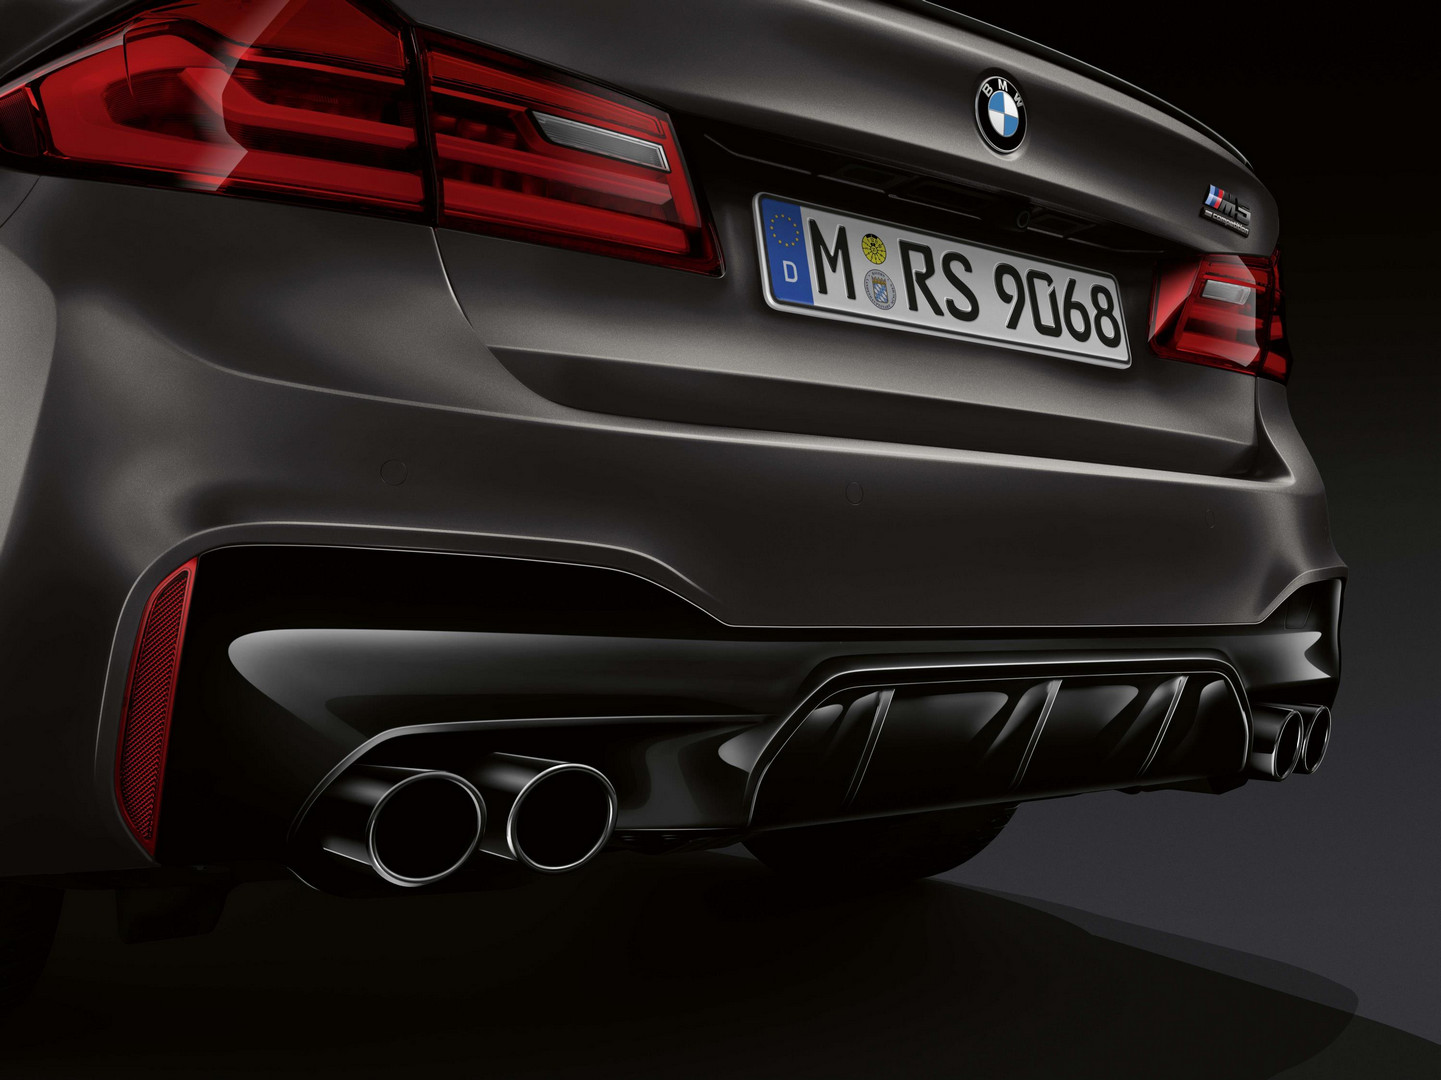 2020 bmw m5 edition 35 years  limited to 350 units only